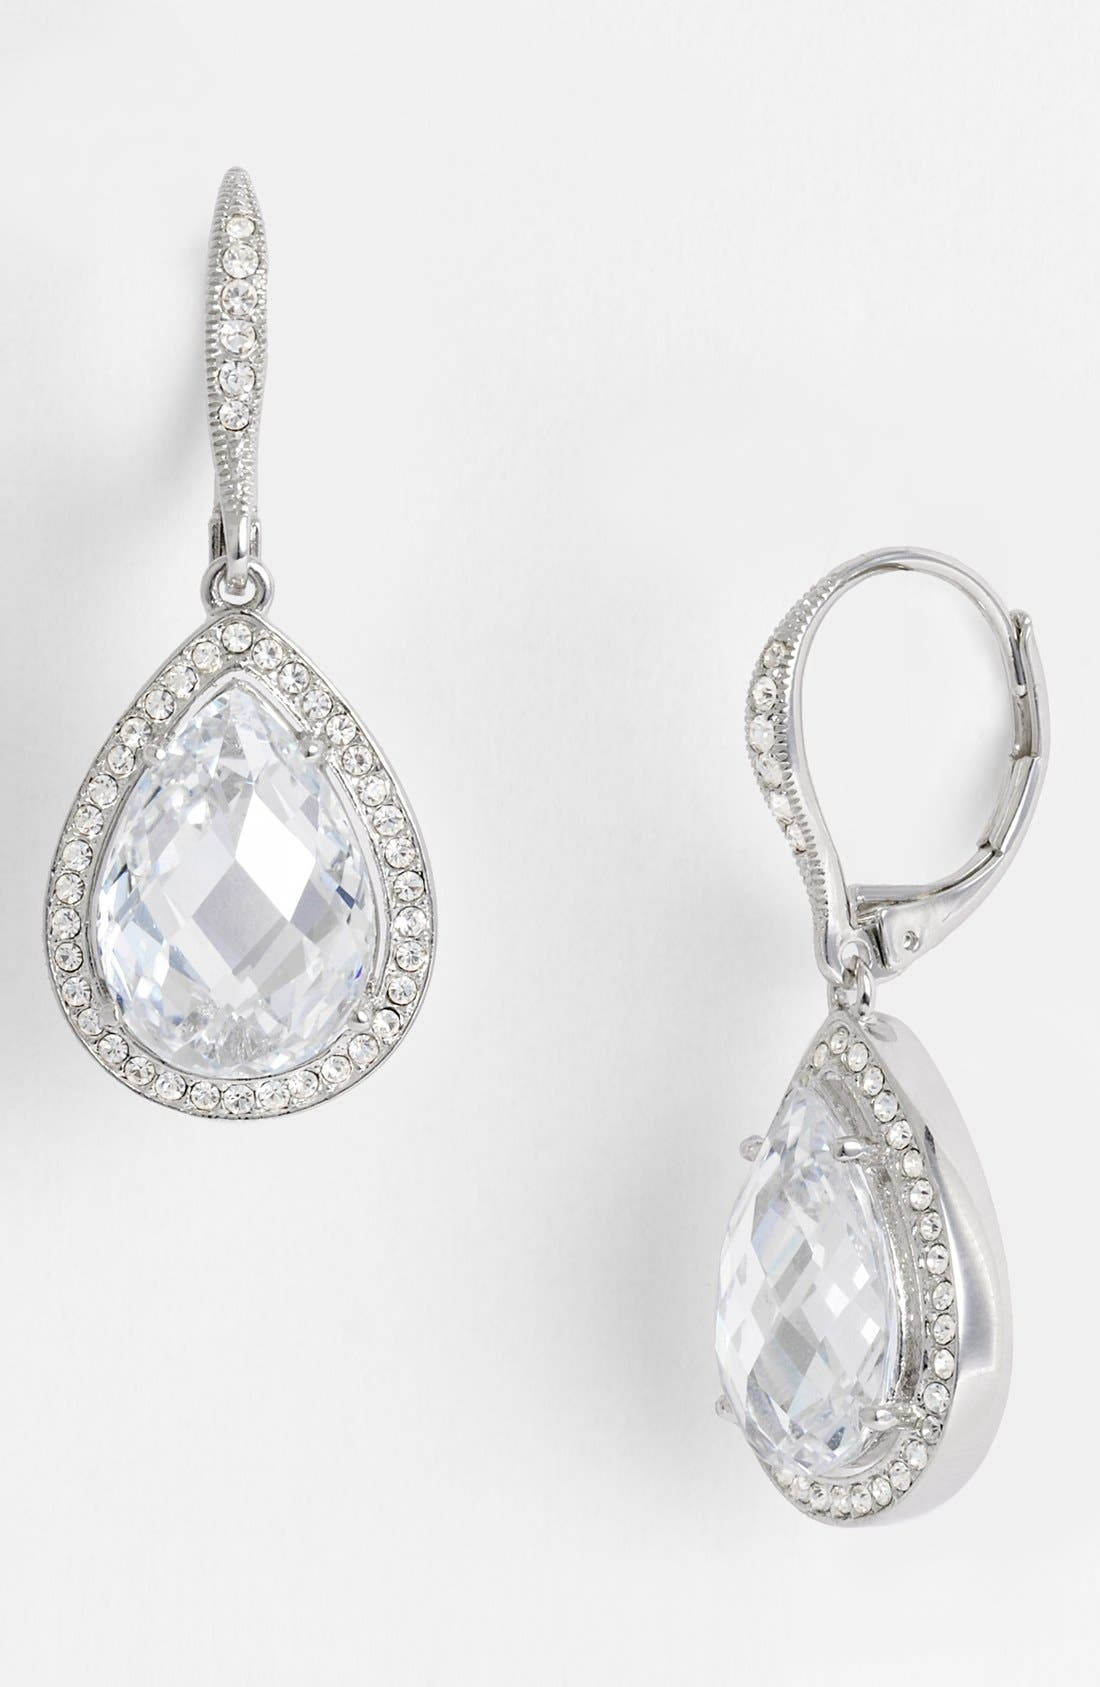 Pear Drop Earrings,                             Alternate thumbnail 2, color,                             CLEAR CRYSTAL/ SILVER